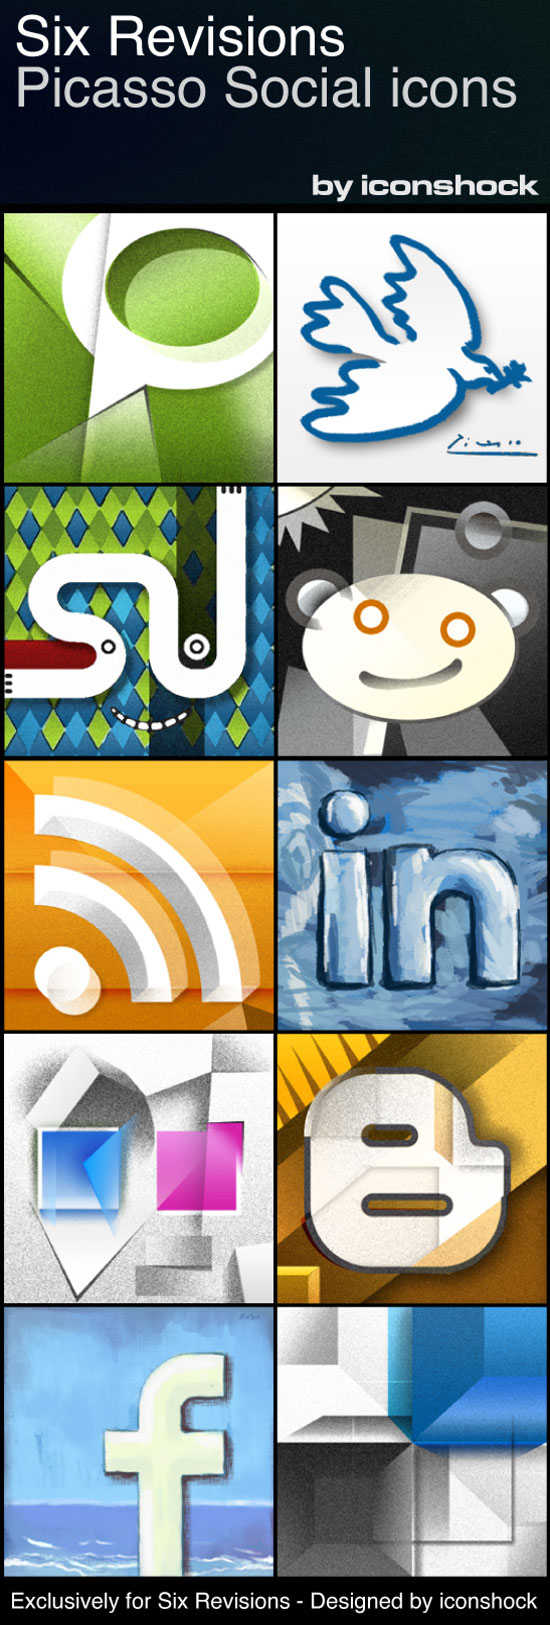 Picasso: A Free Social Media Icon Set